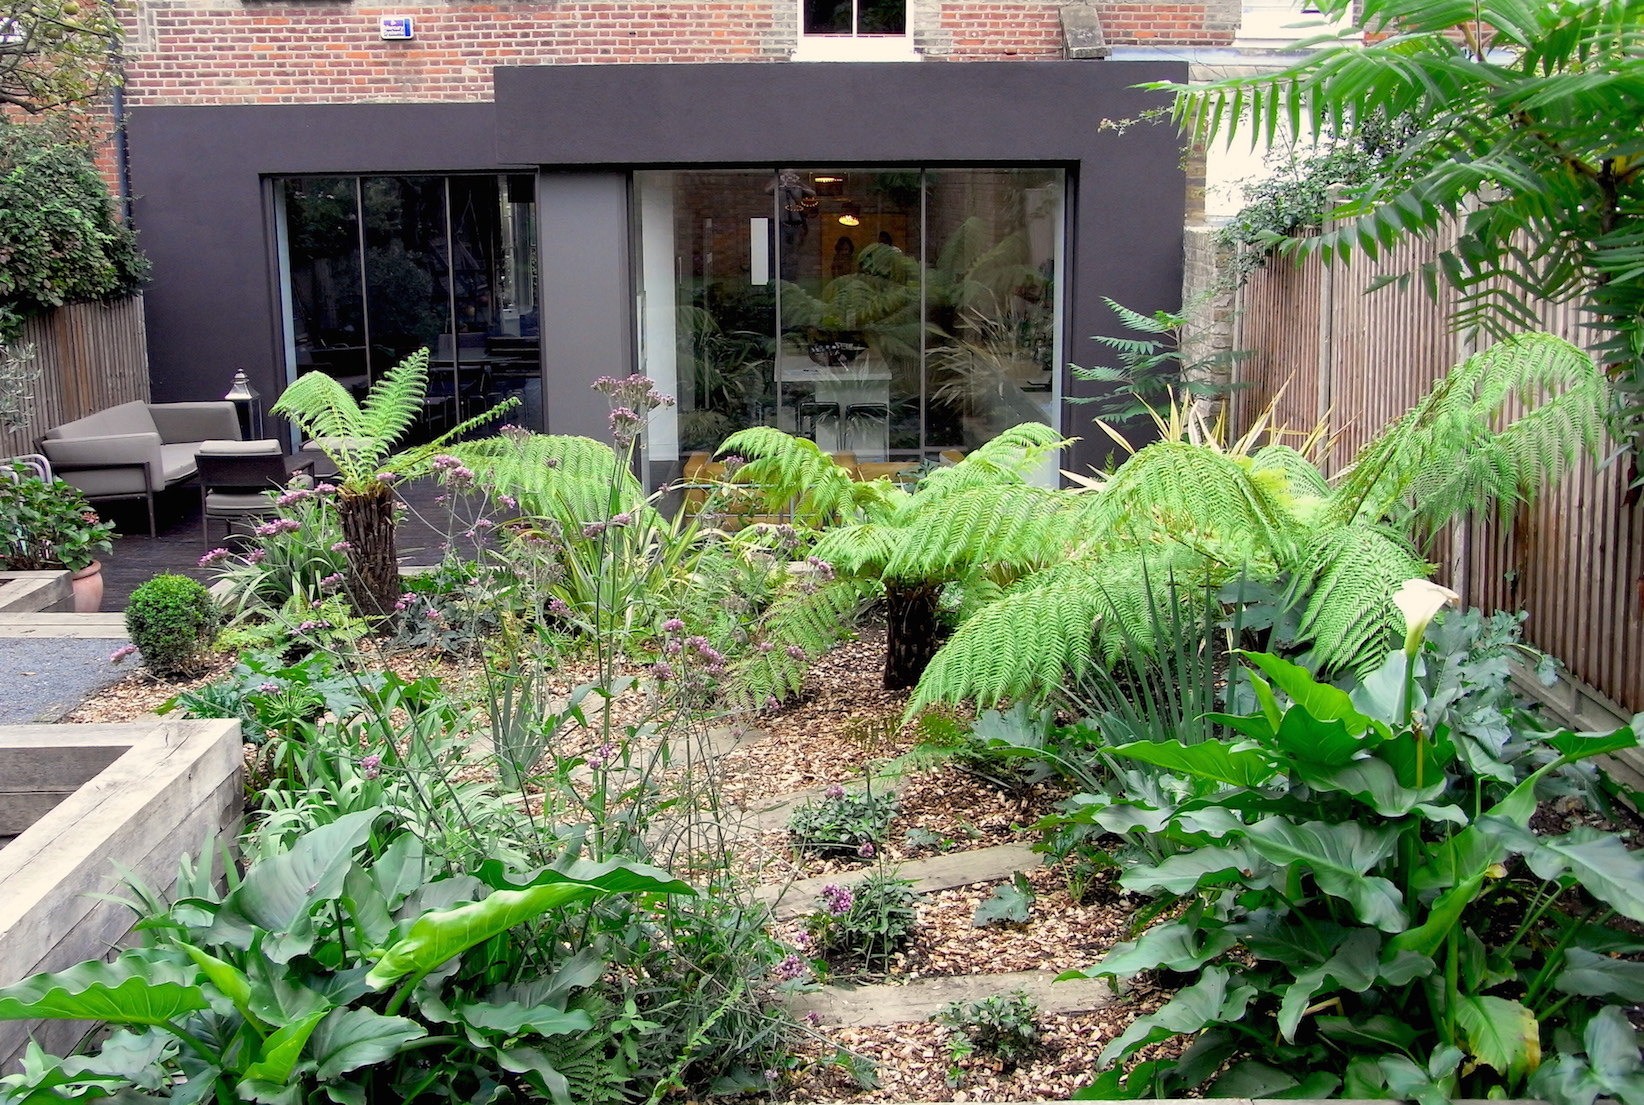 Blog brightling garden designs for Jungle garden design ideas